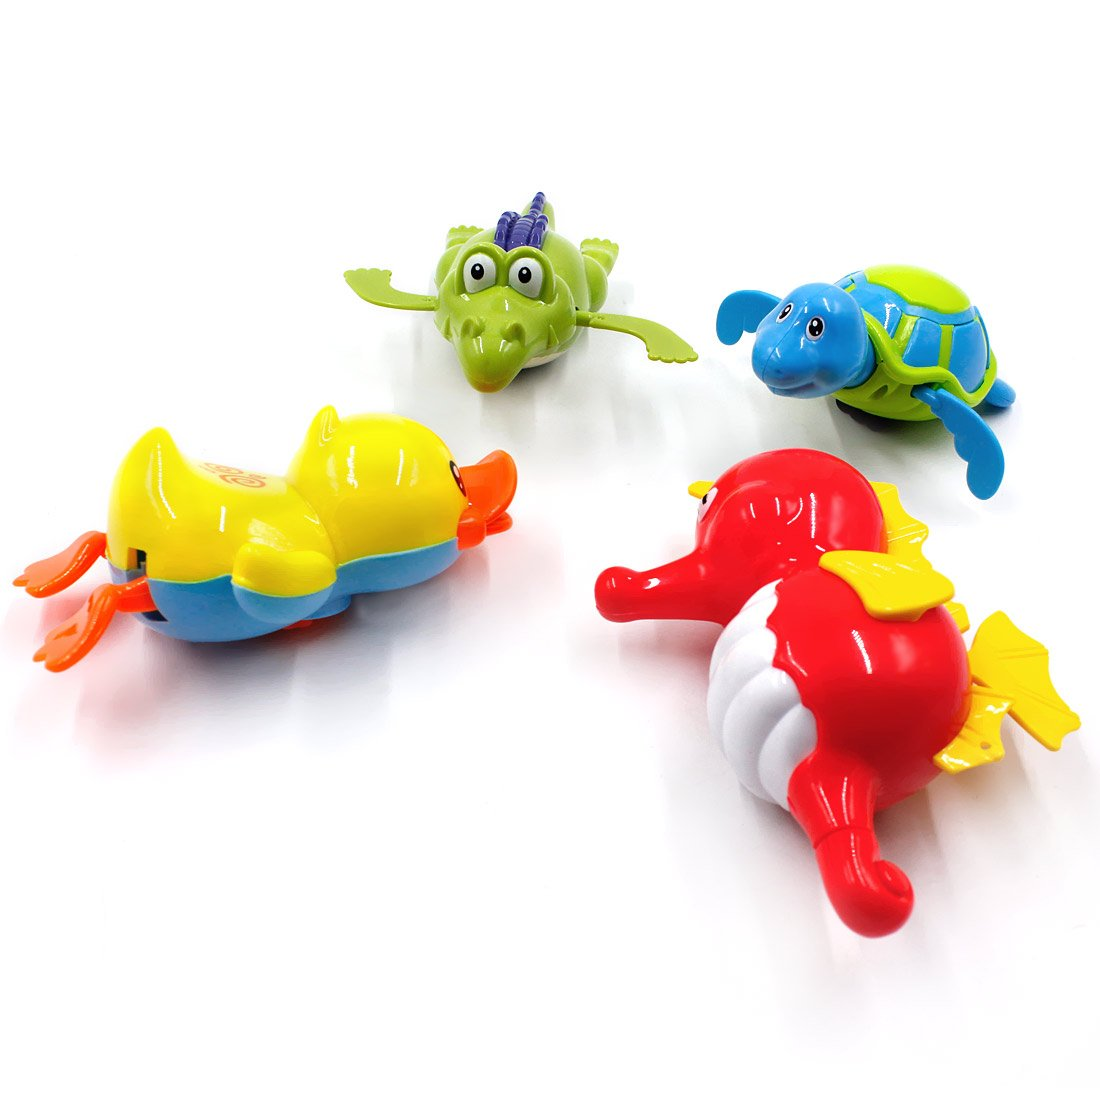 BEIHUI Swimming Water Wind Up Kids Baby Bath Toys Bathtub Tub Turtle Duck Clockwork Bath Toys Crocodile Hippocampus Floating Animal Toys for Toddlers Boys Girls, 4 Pack